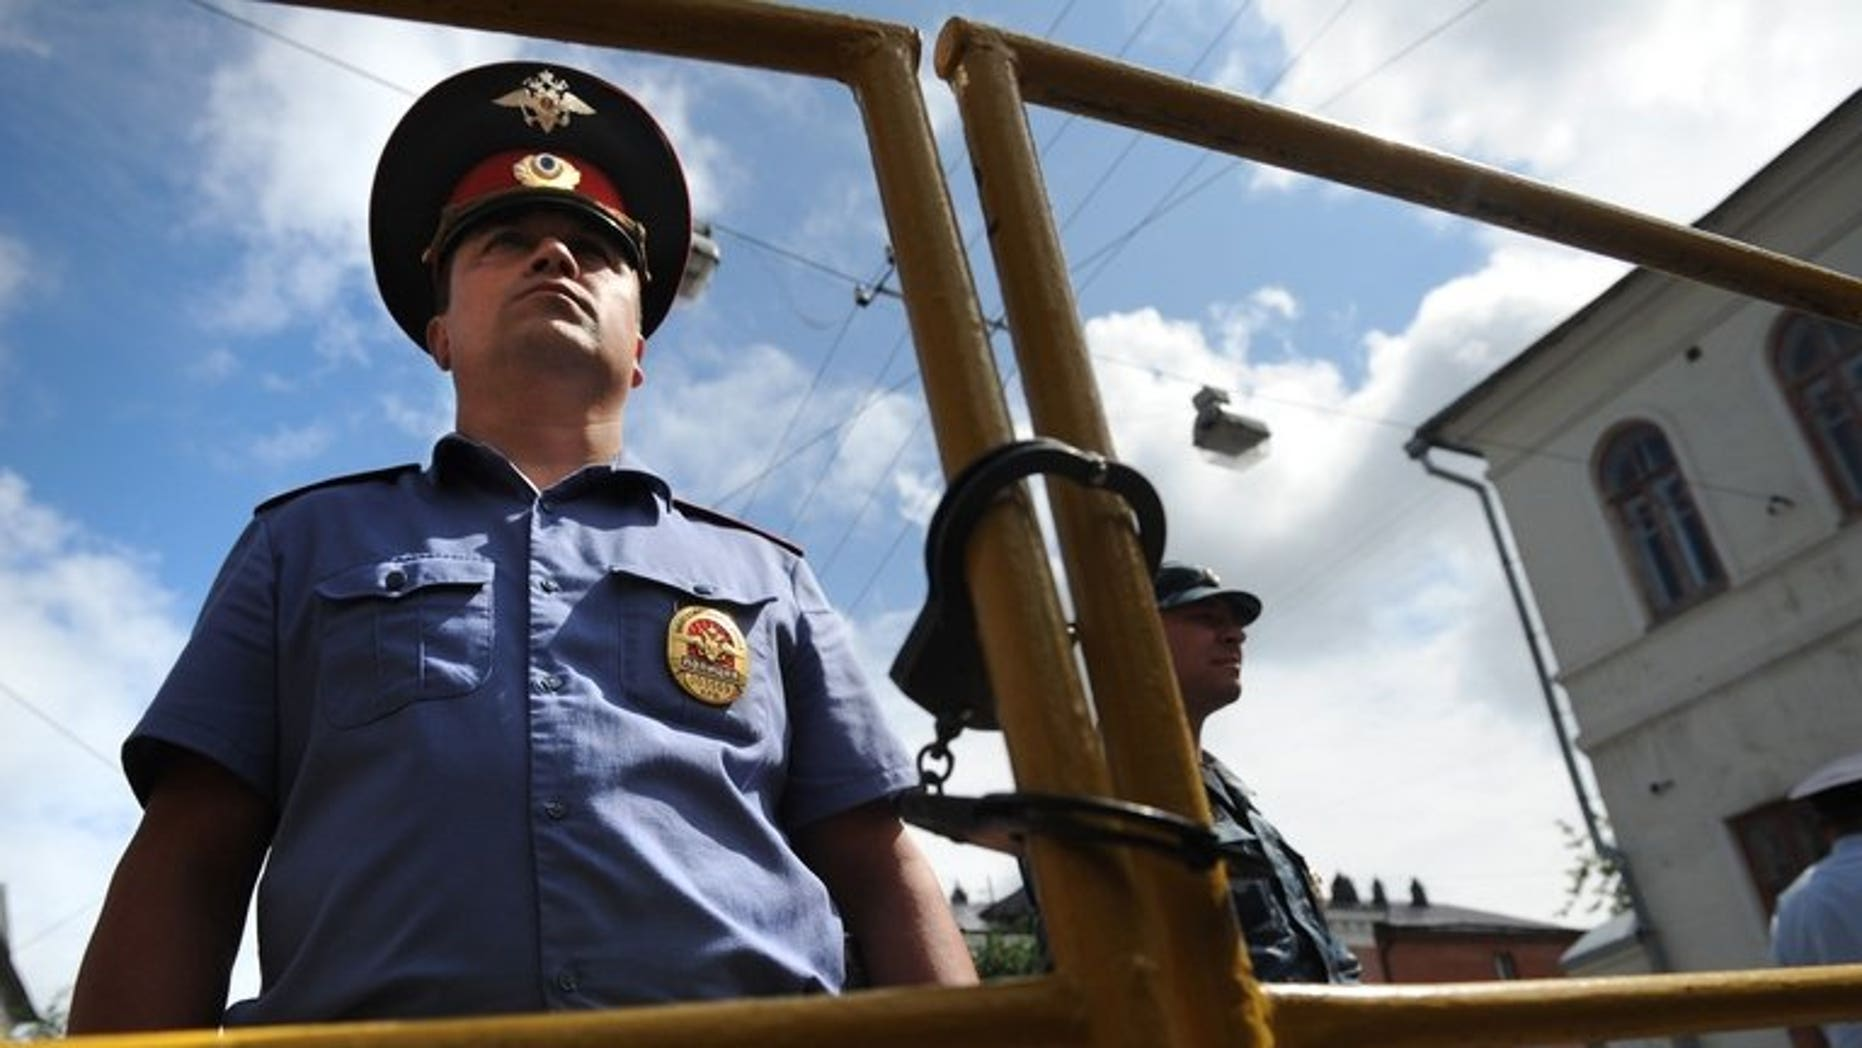 """Police officers secure the courtyard of the tribunal in Kirov on July 18, 2013. British Foreign Secretary William Hague on Thursday warned against the """"selective application of the rule of law"""" in Russia following the jailing of protest leader Alexei Navalny."""